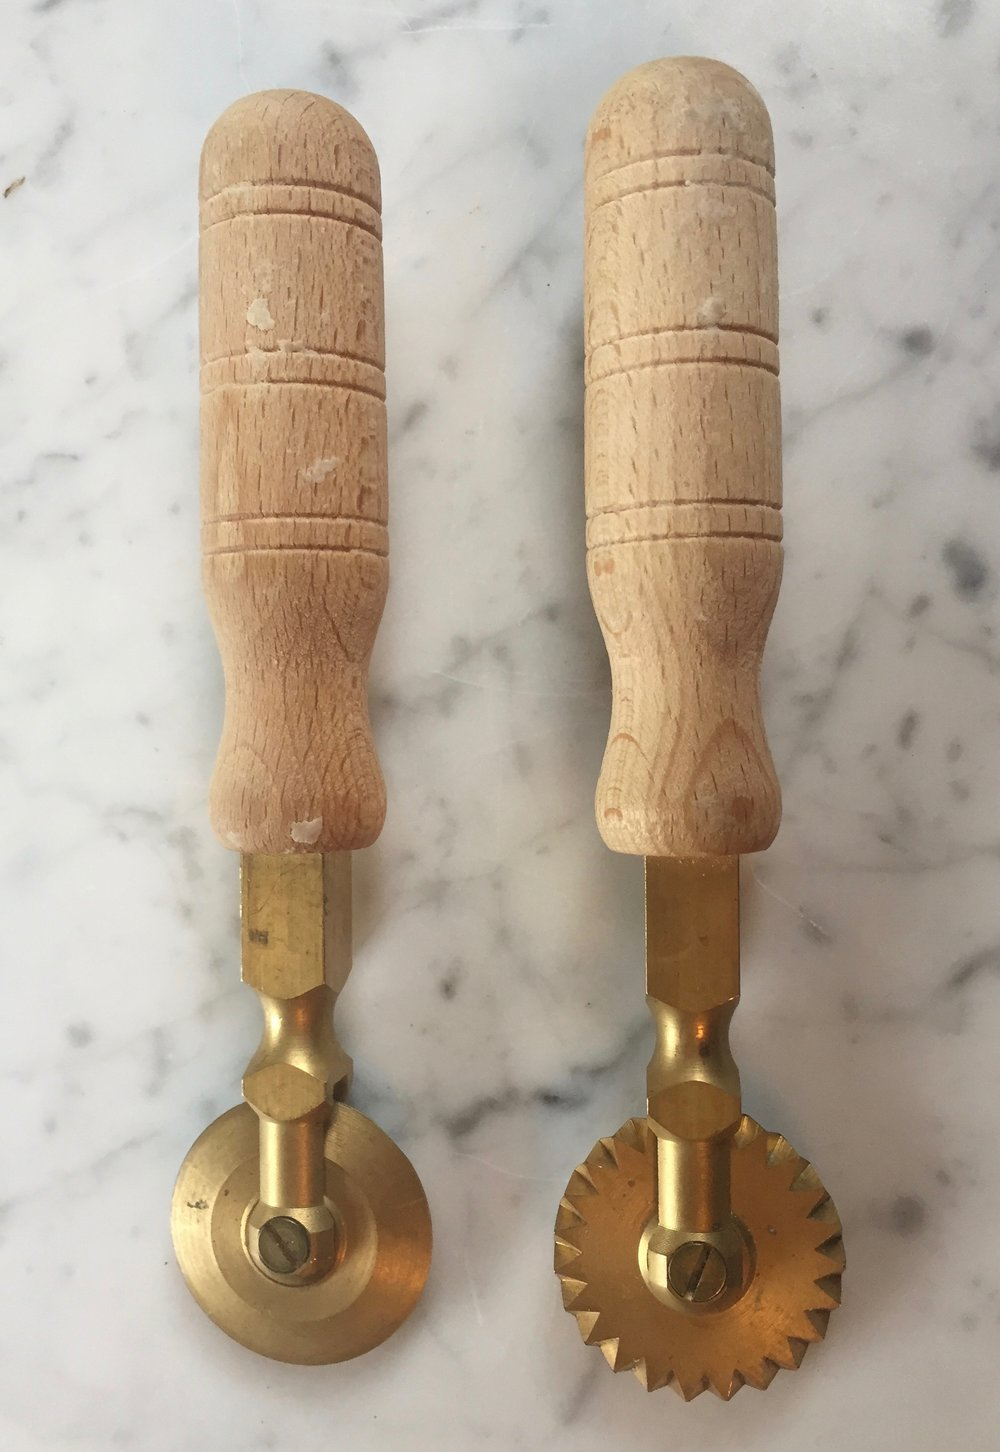 Italian brass toothed ravioli cutter with wooden handle     - awesome!